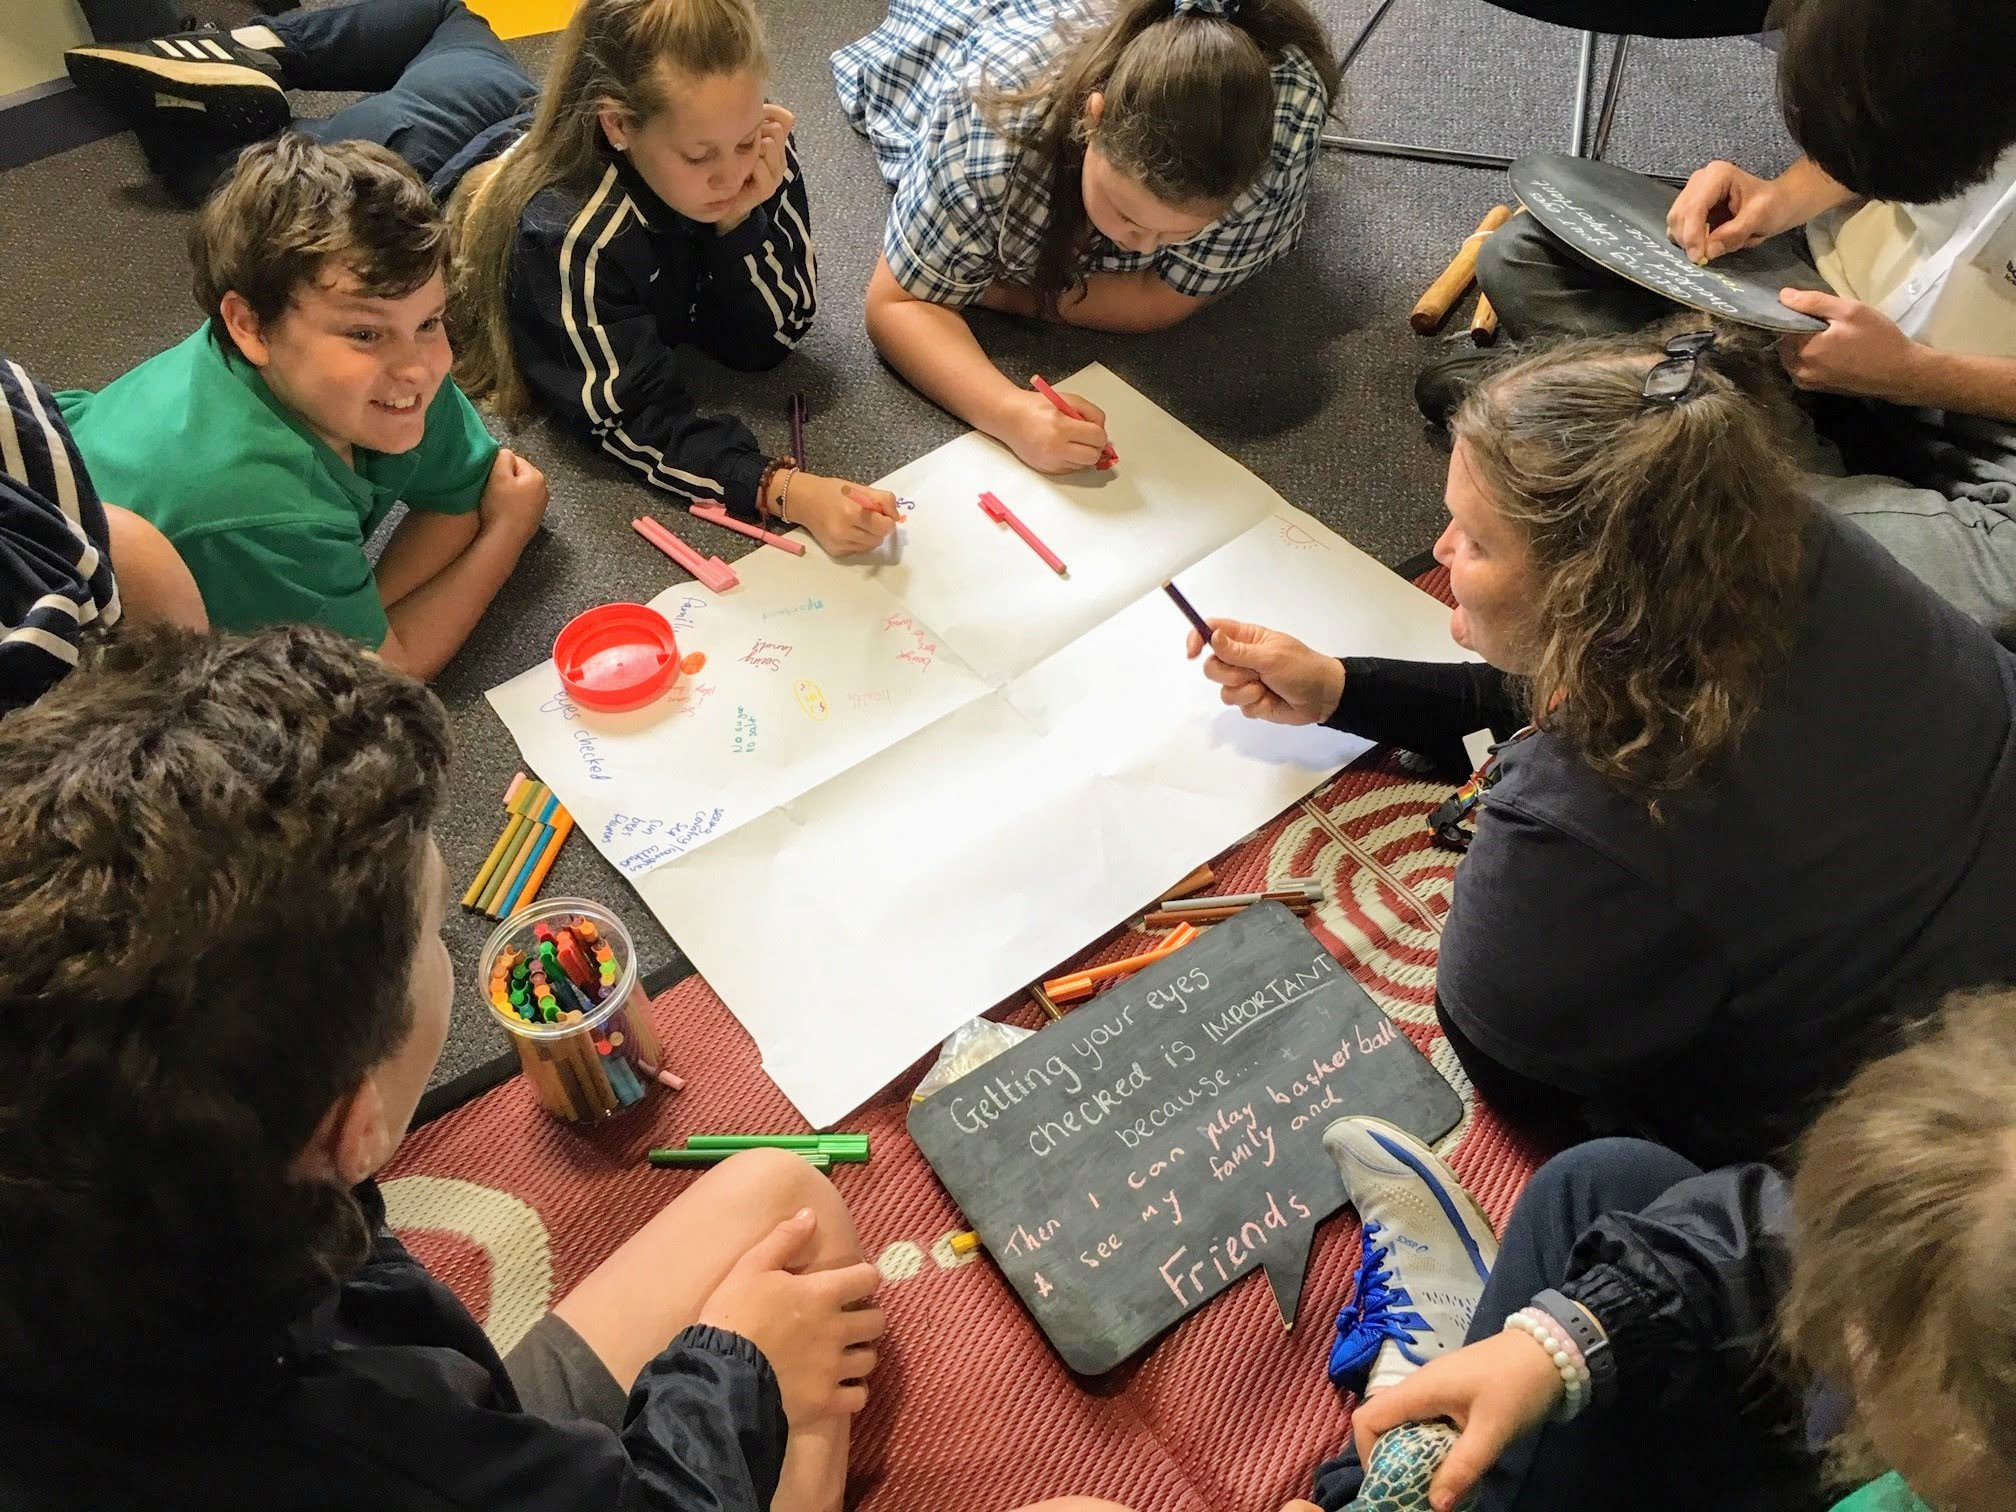 Children designing a poster as part of Cultural Health and Wellbeing Program for Schools